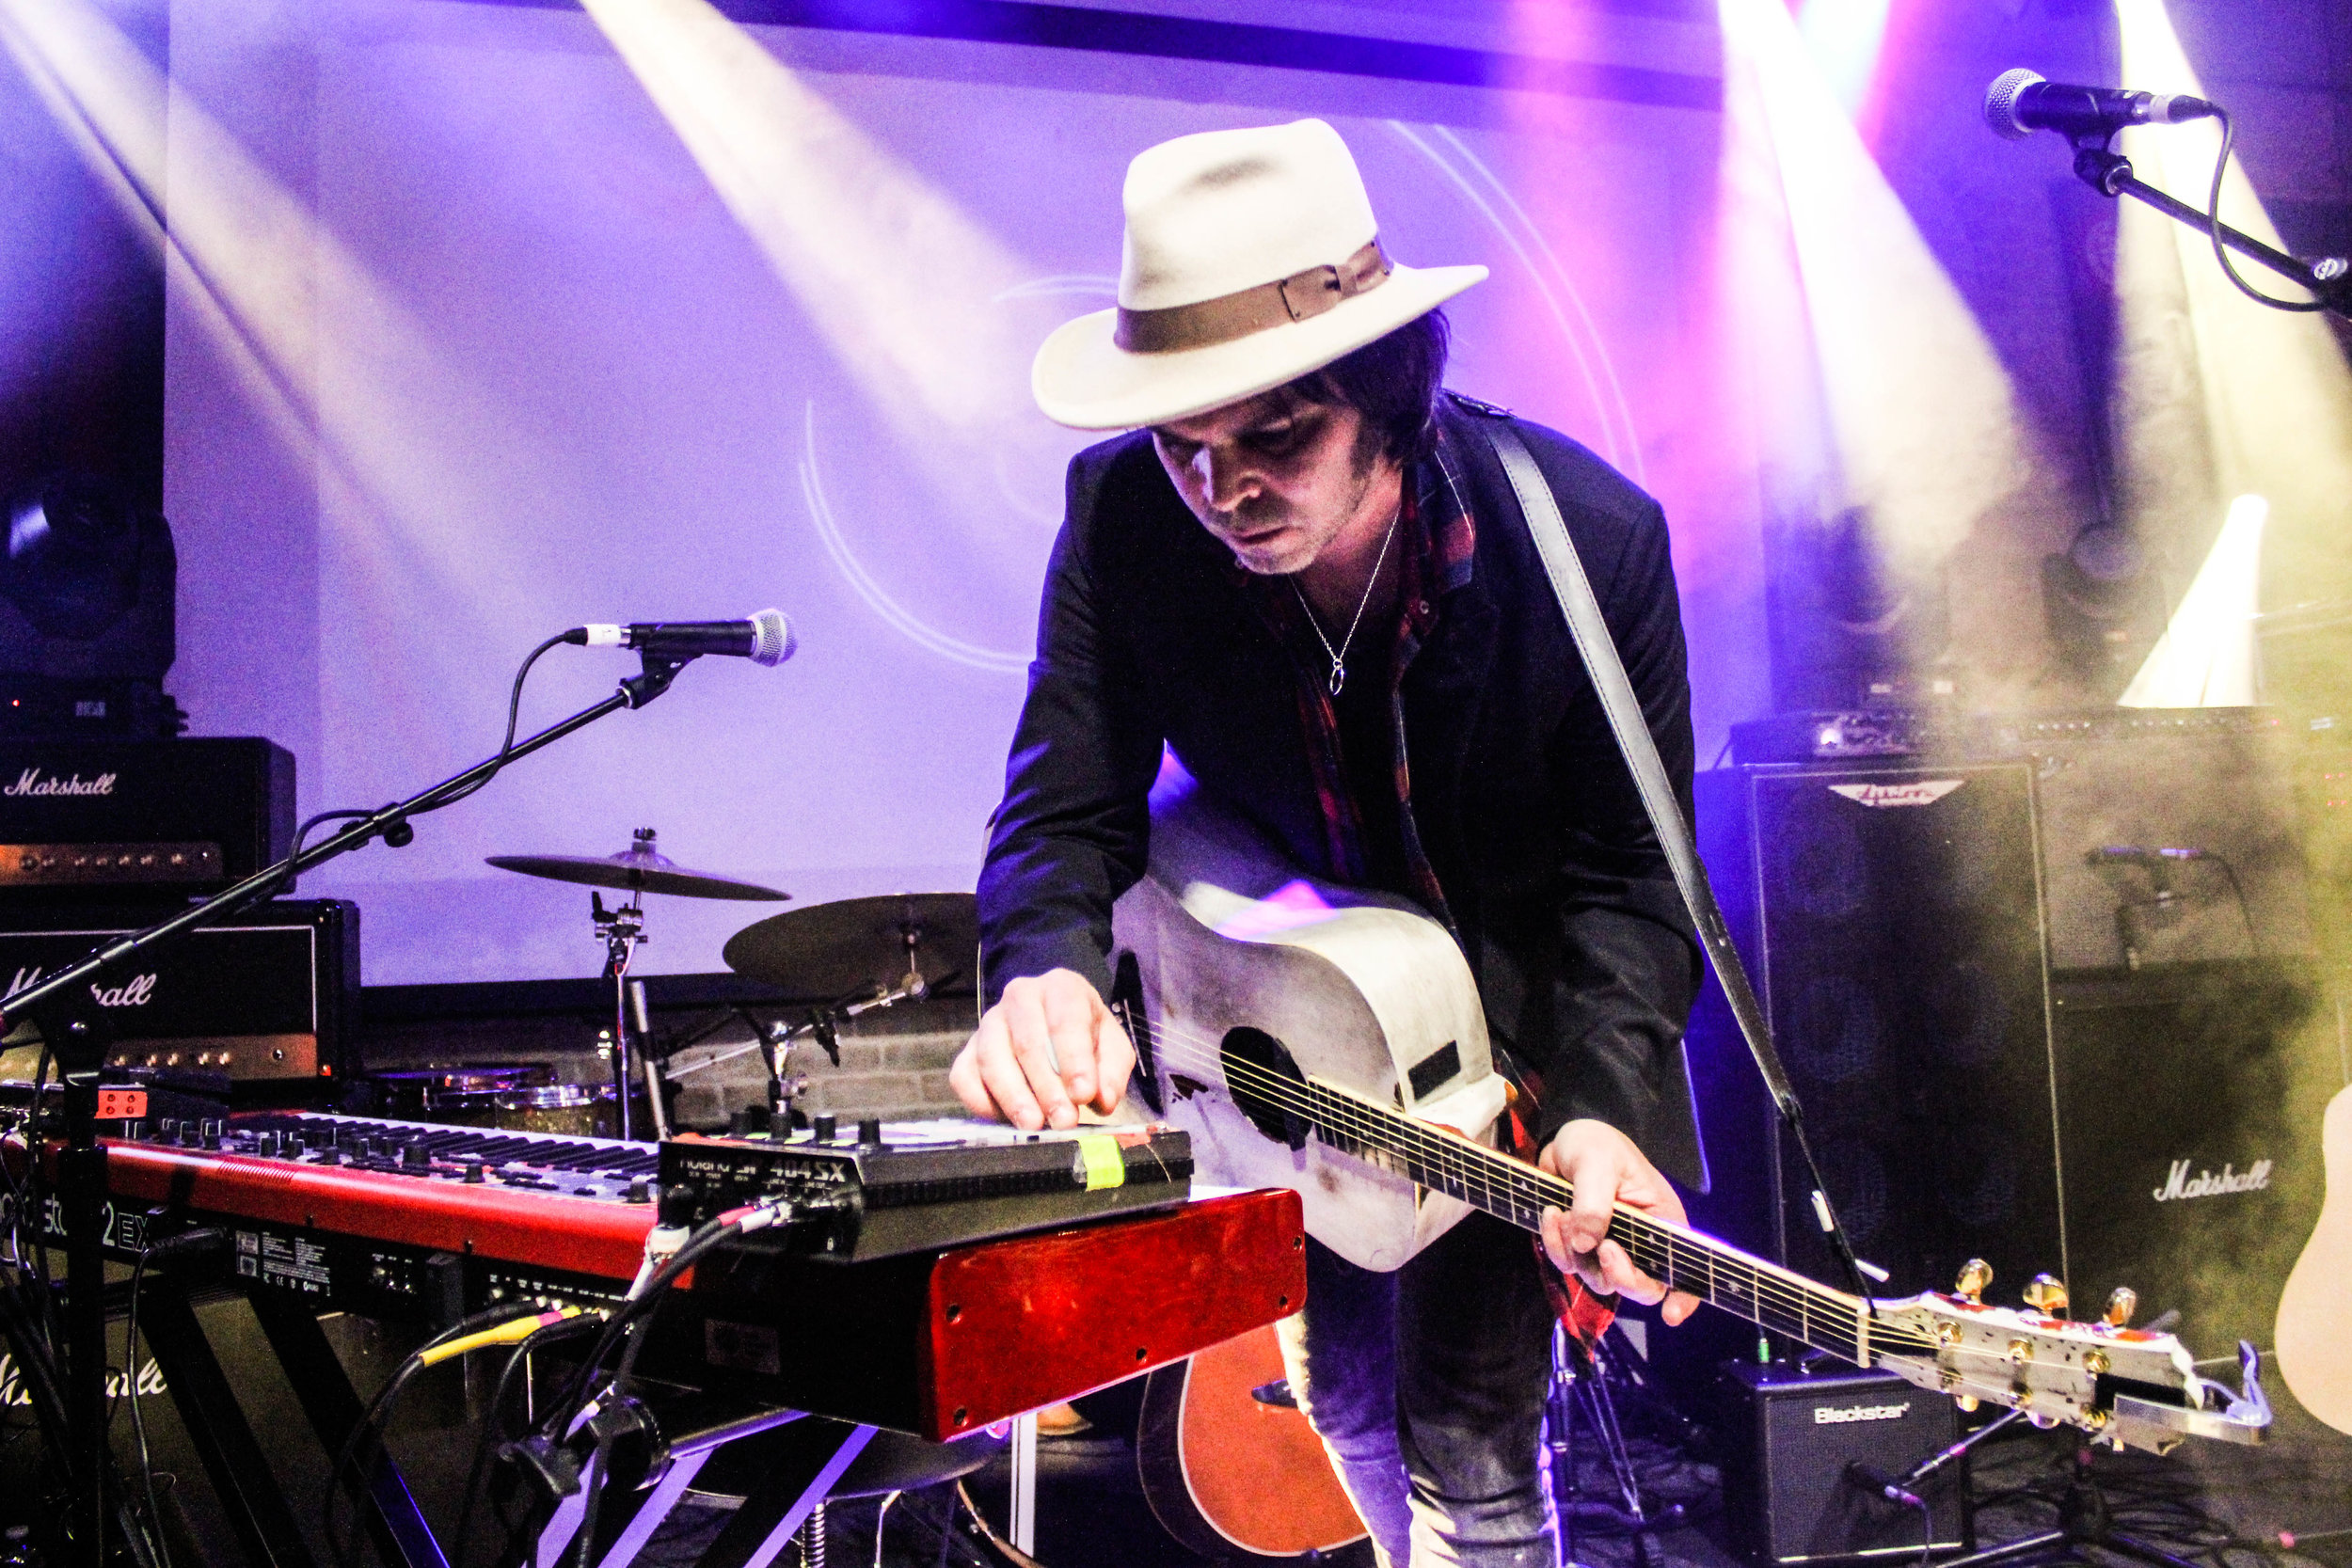 Gaz Coombes at SXSW - Photo © Concentus Music - Reproduction without permission not permitted